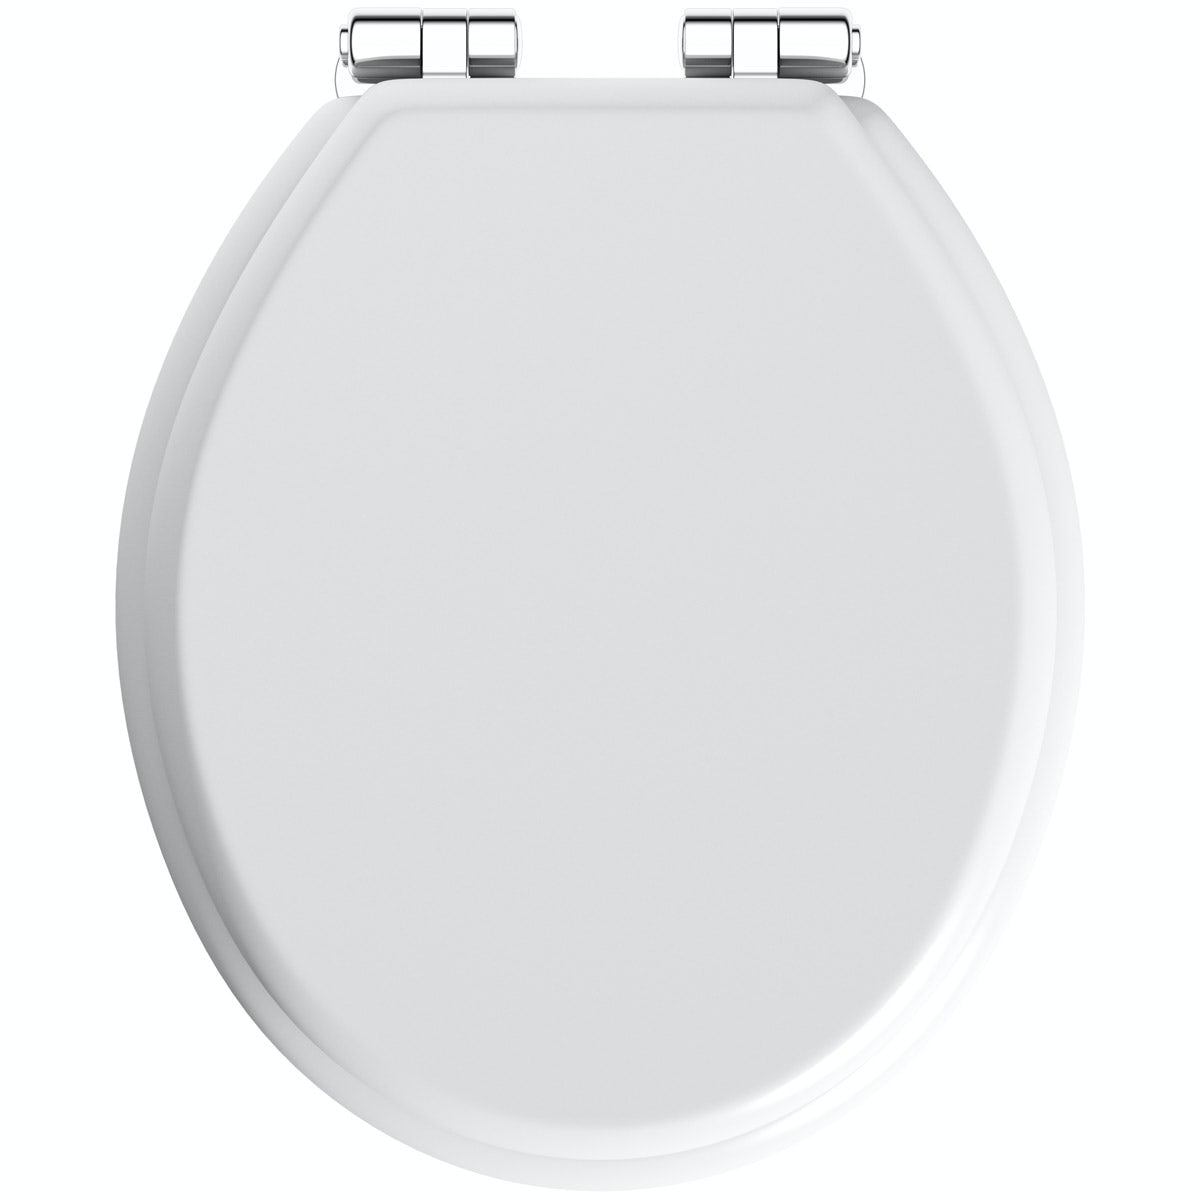 The Bath Co Traditional White